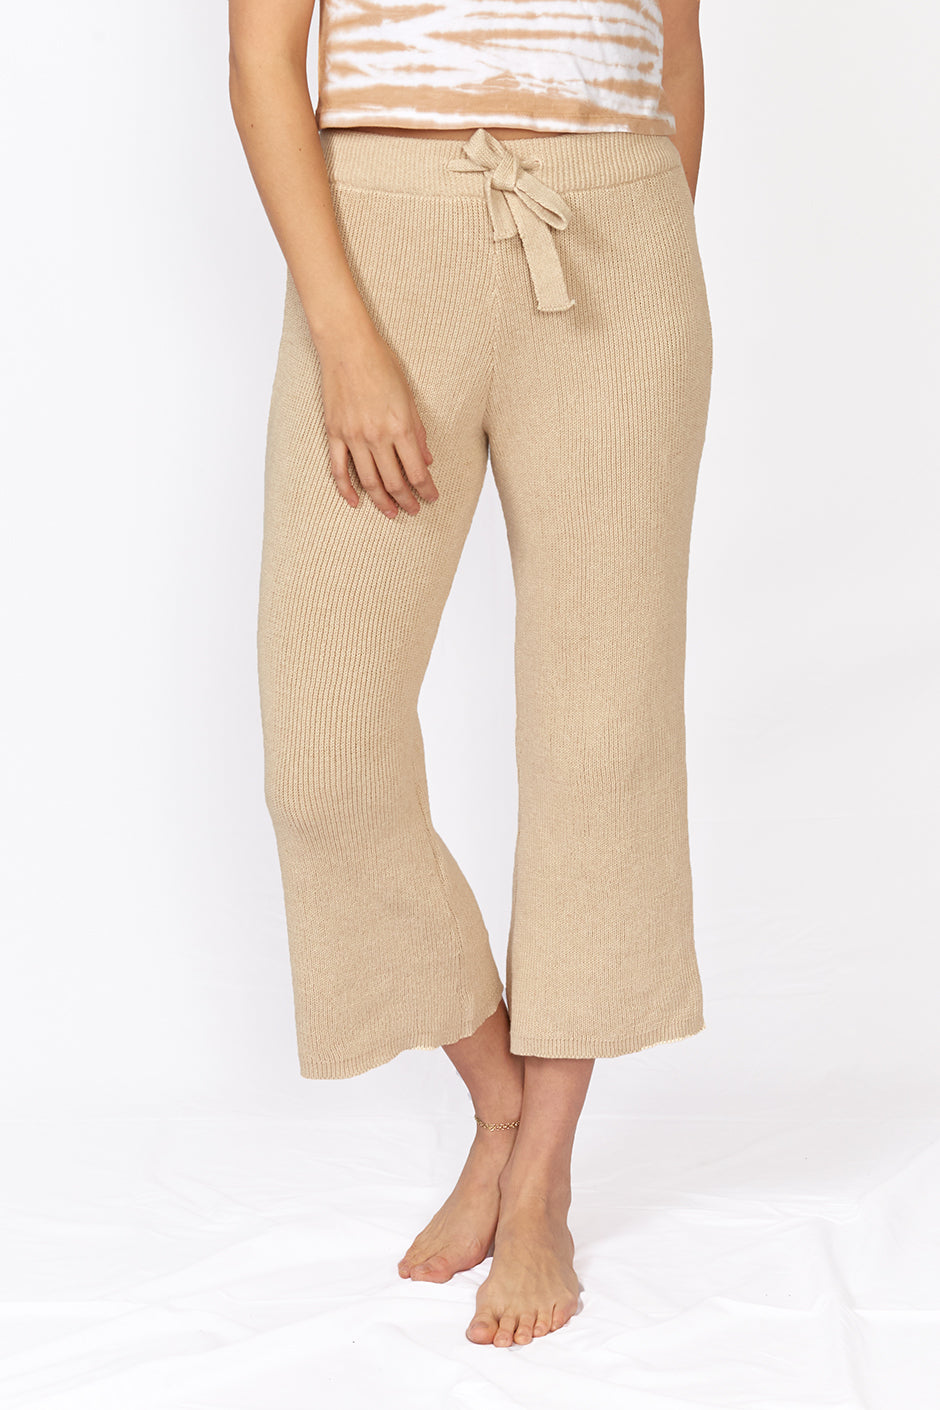 Mirage Pant in Sand color for women by Paneros Clothing. Handmade from sustainable cotton, high waisted and tied with a flare. Front View.